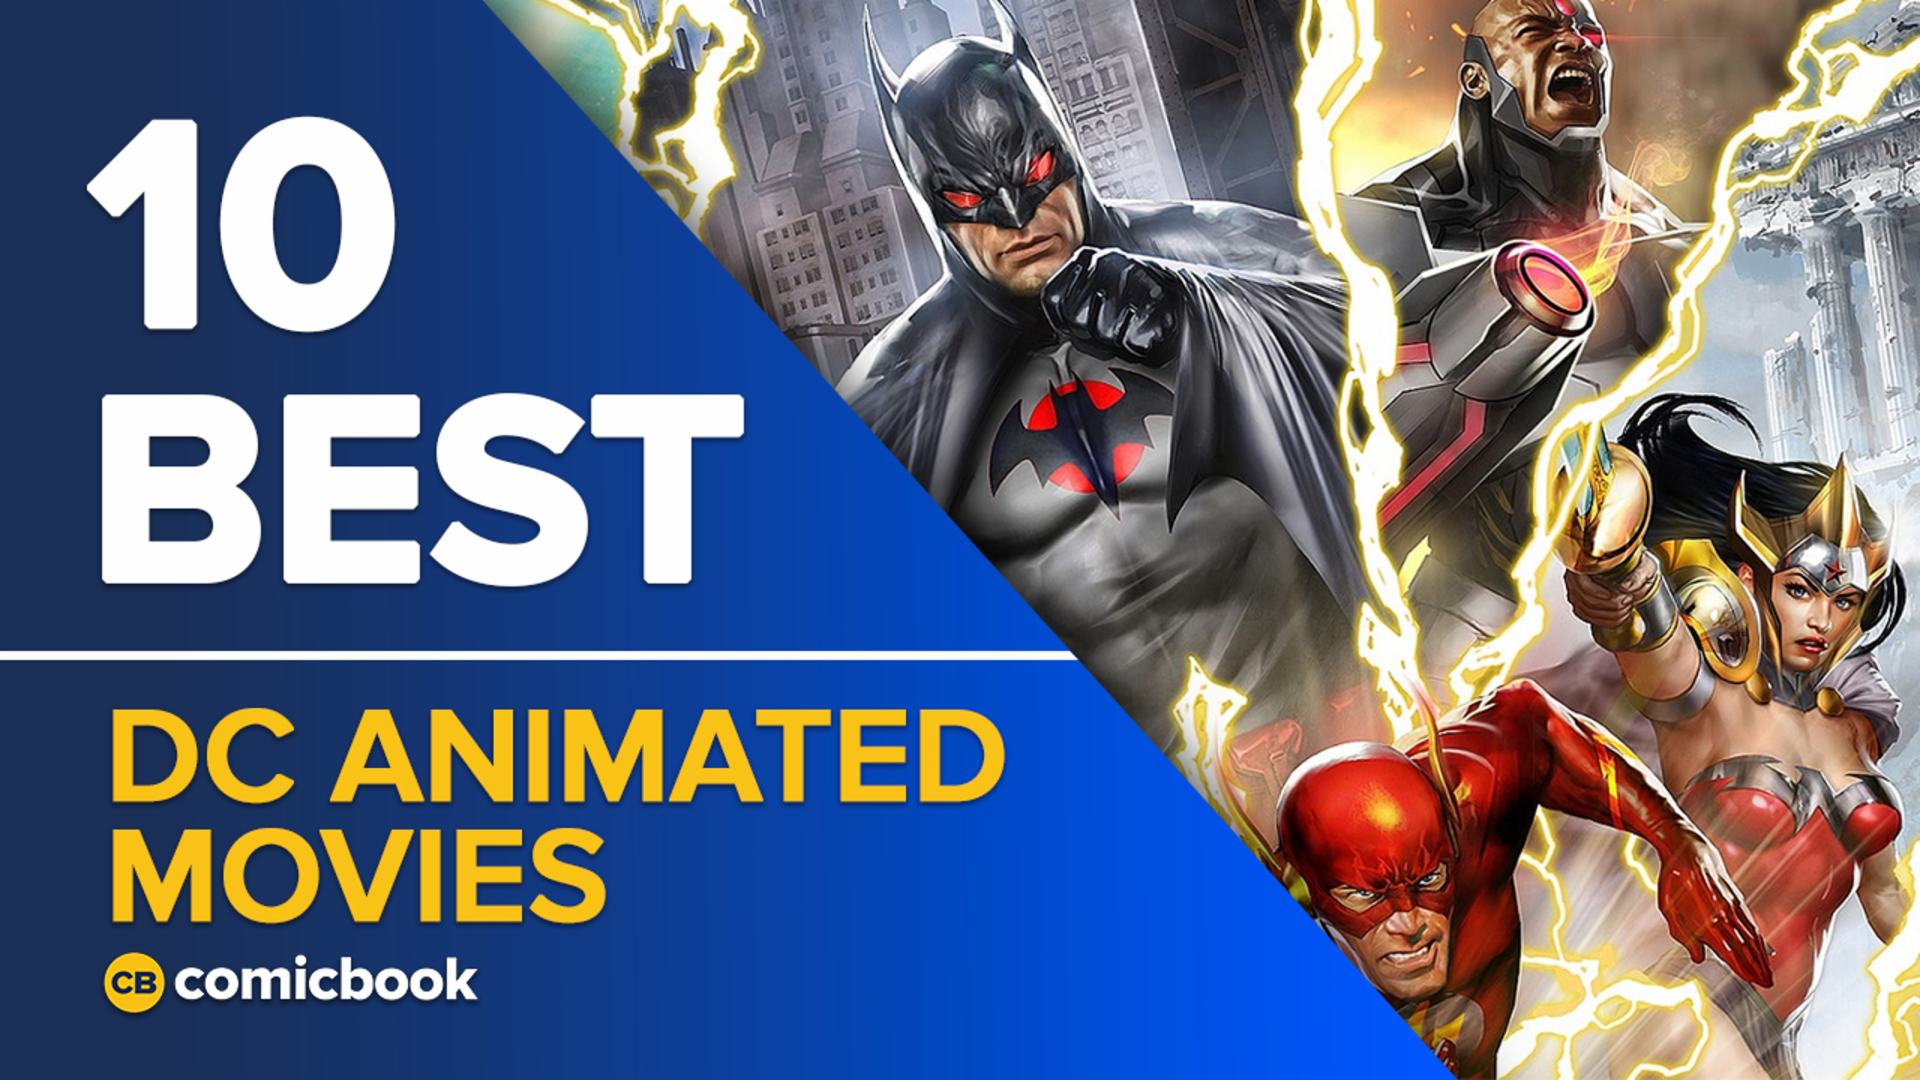 10 Best DC Animated Movies screen capture